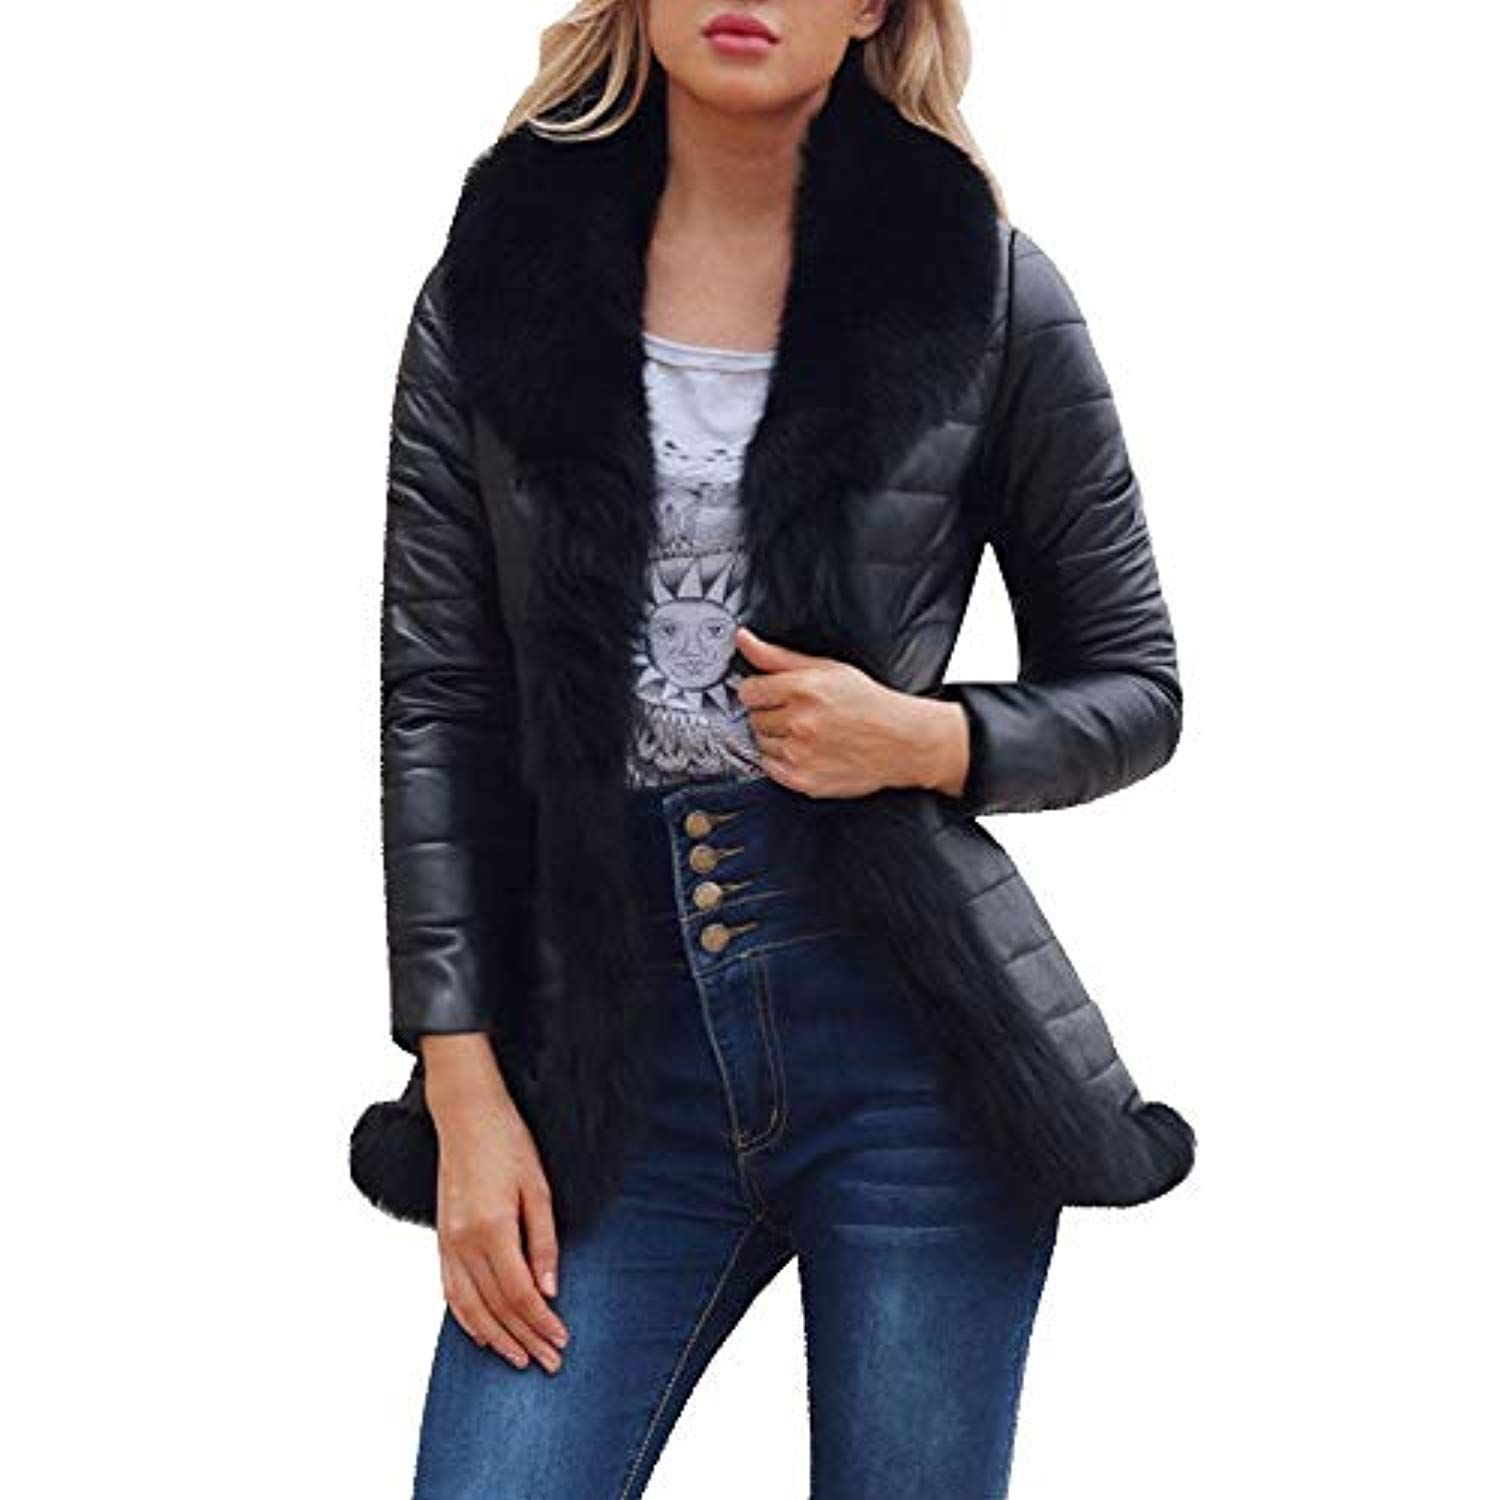 d050003e0 Women's Fashion Jacket, Faux Fur Collar Zipper Leather Patchwork ...